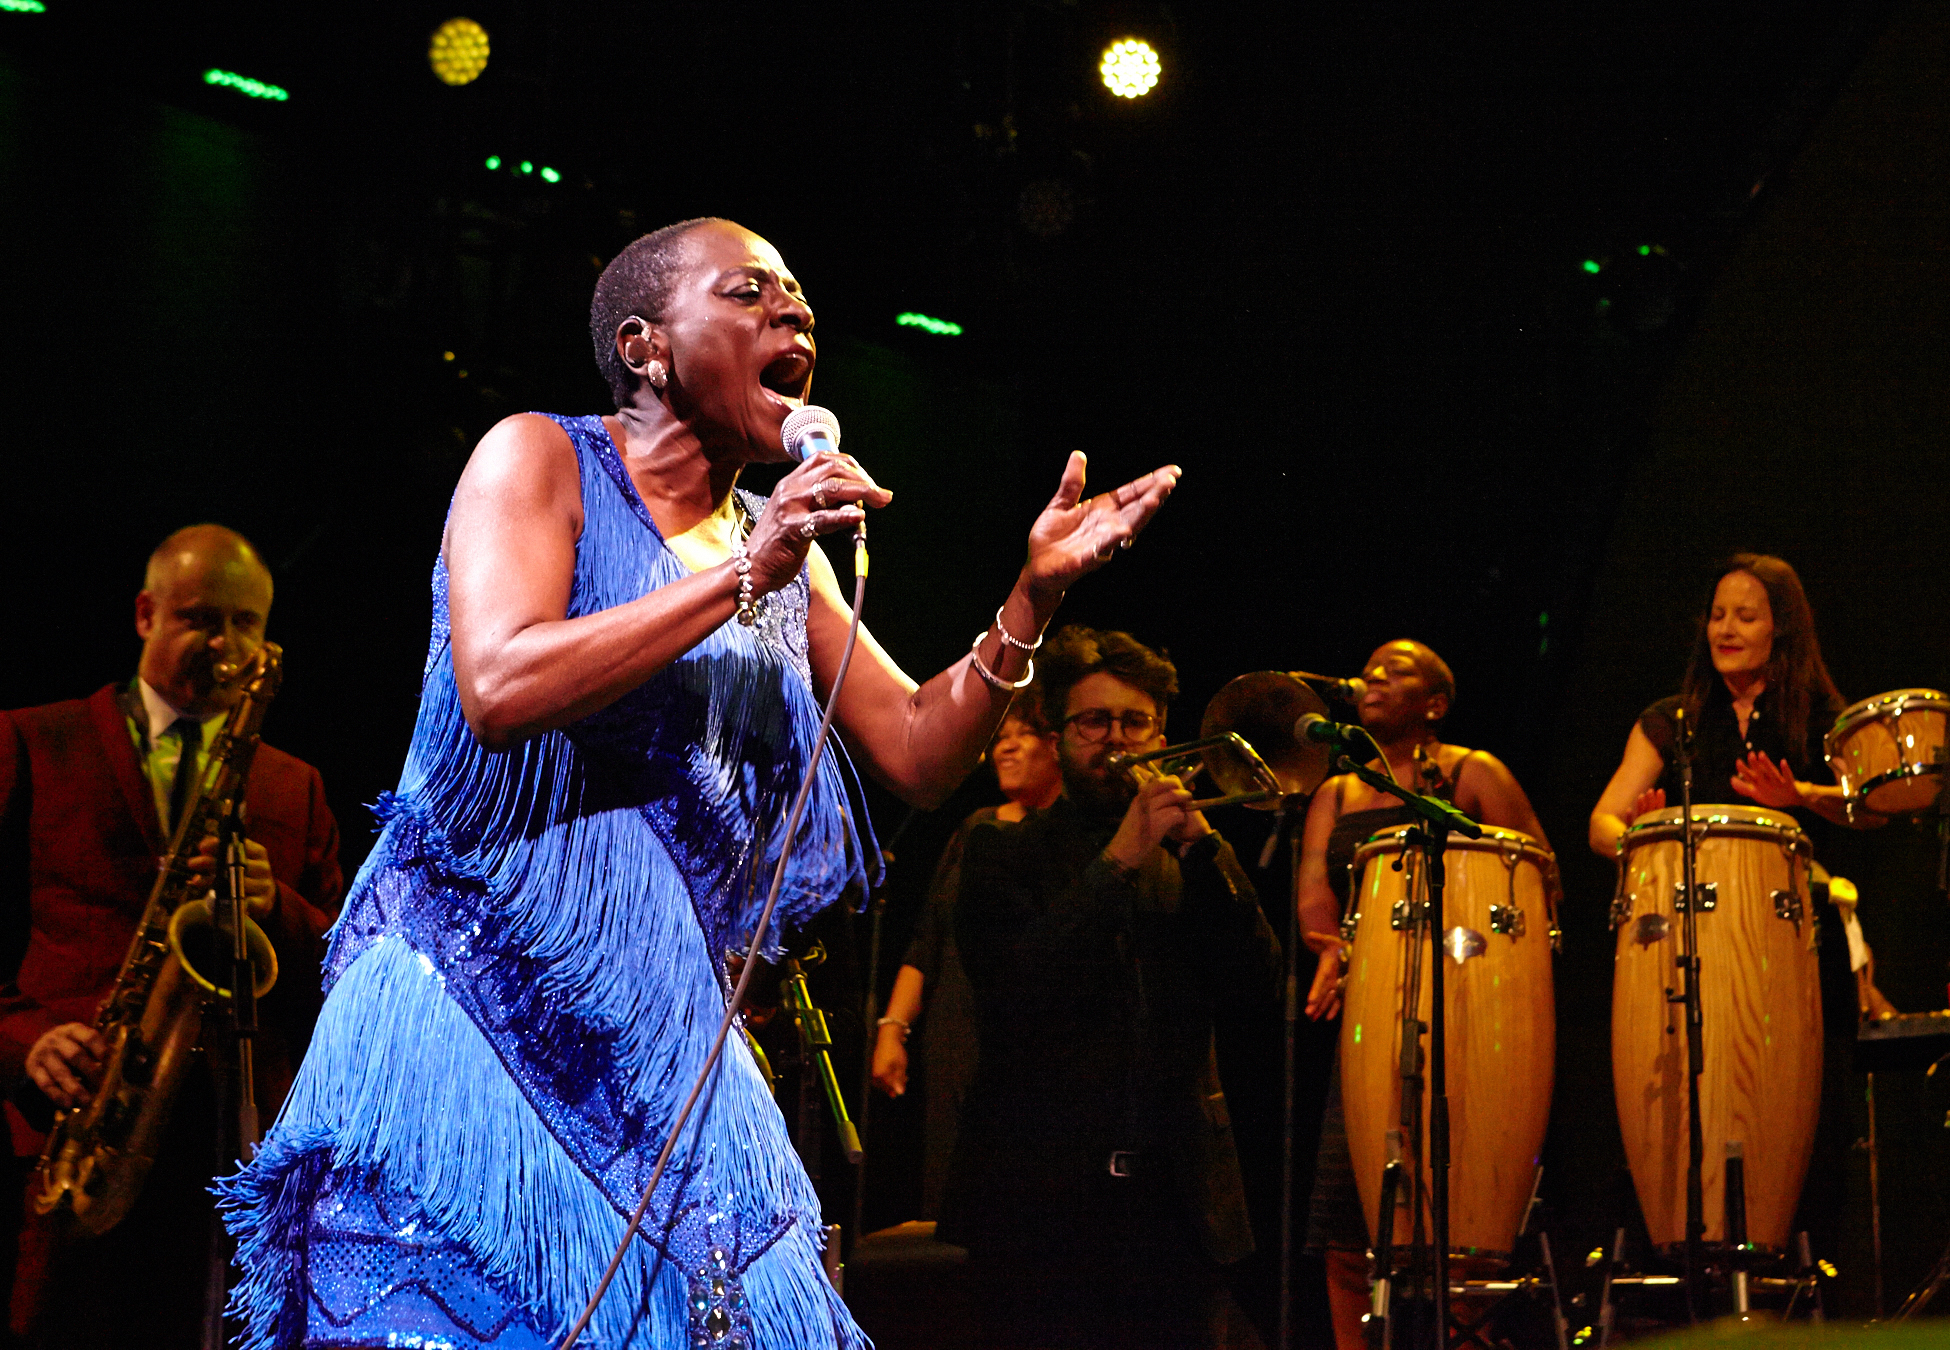 Sharon Jones & The Dap-Kings at BRIC Celebrate Brooklyn! Festival